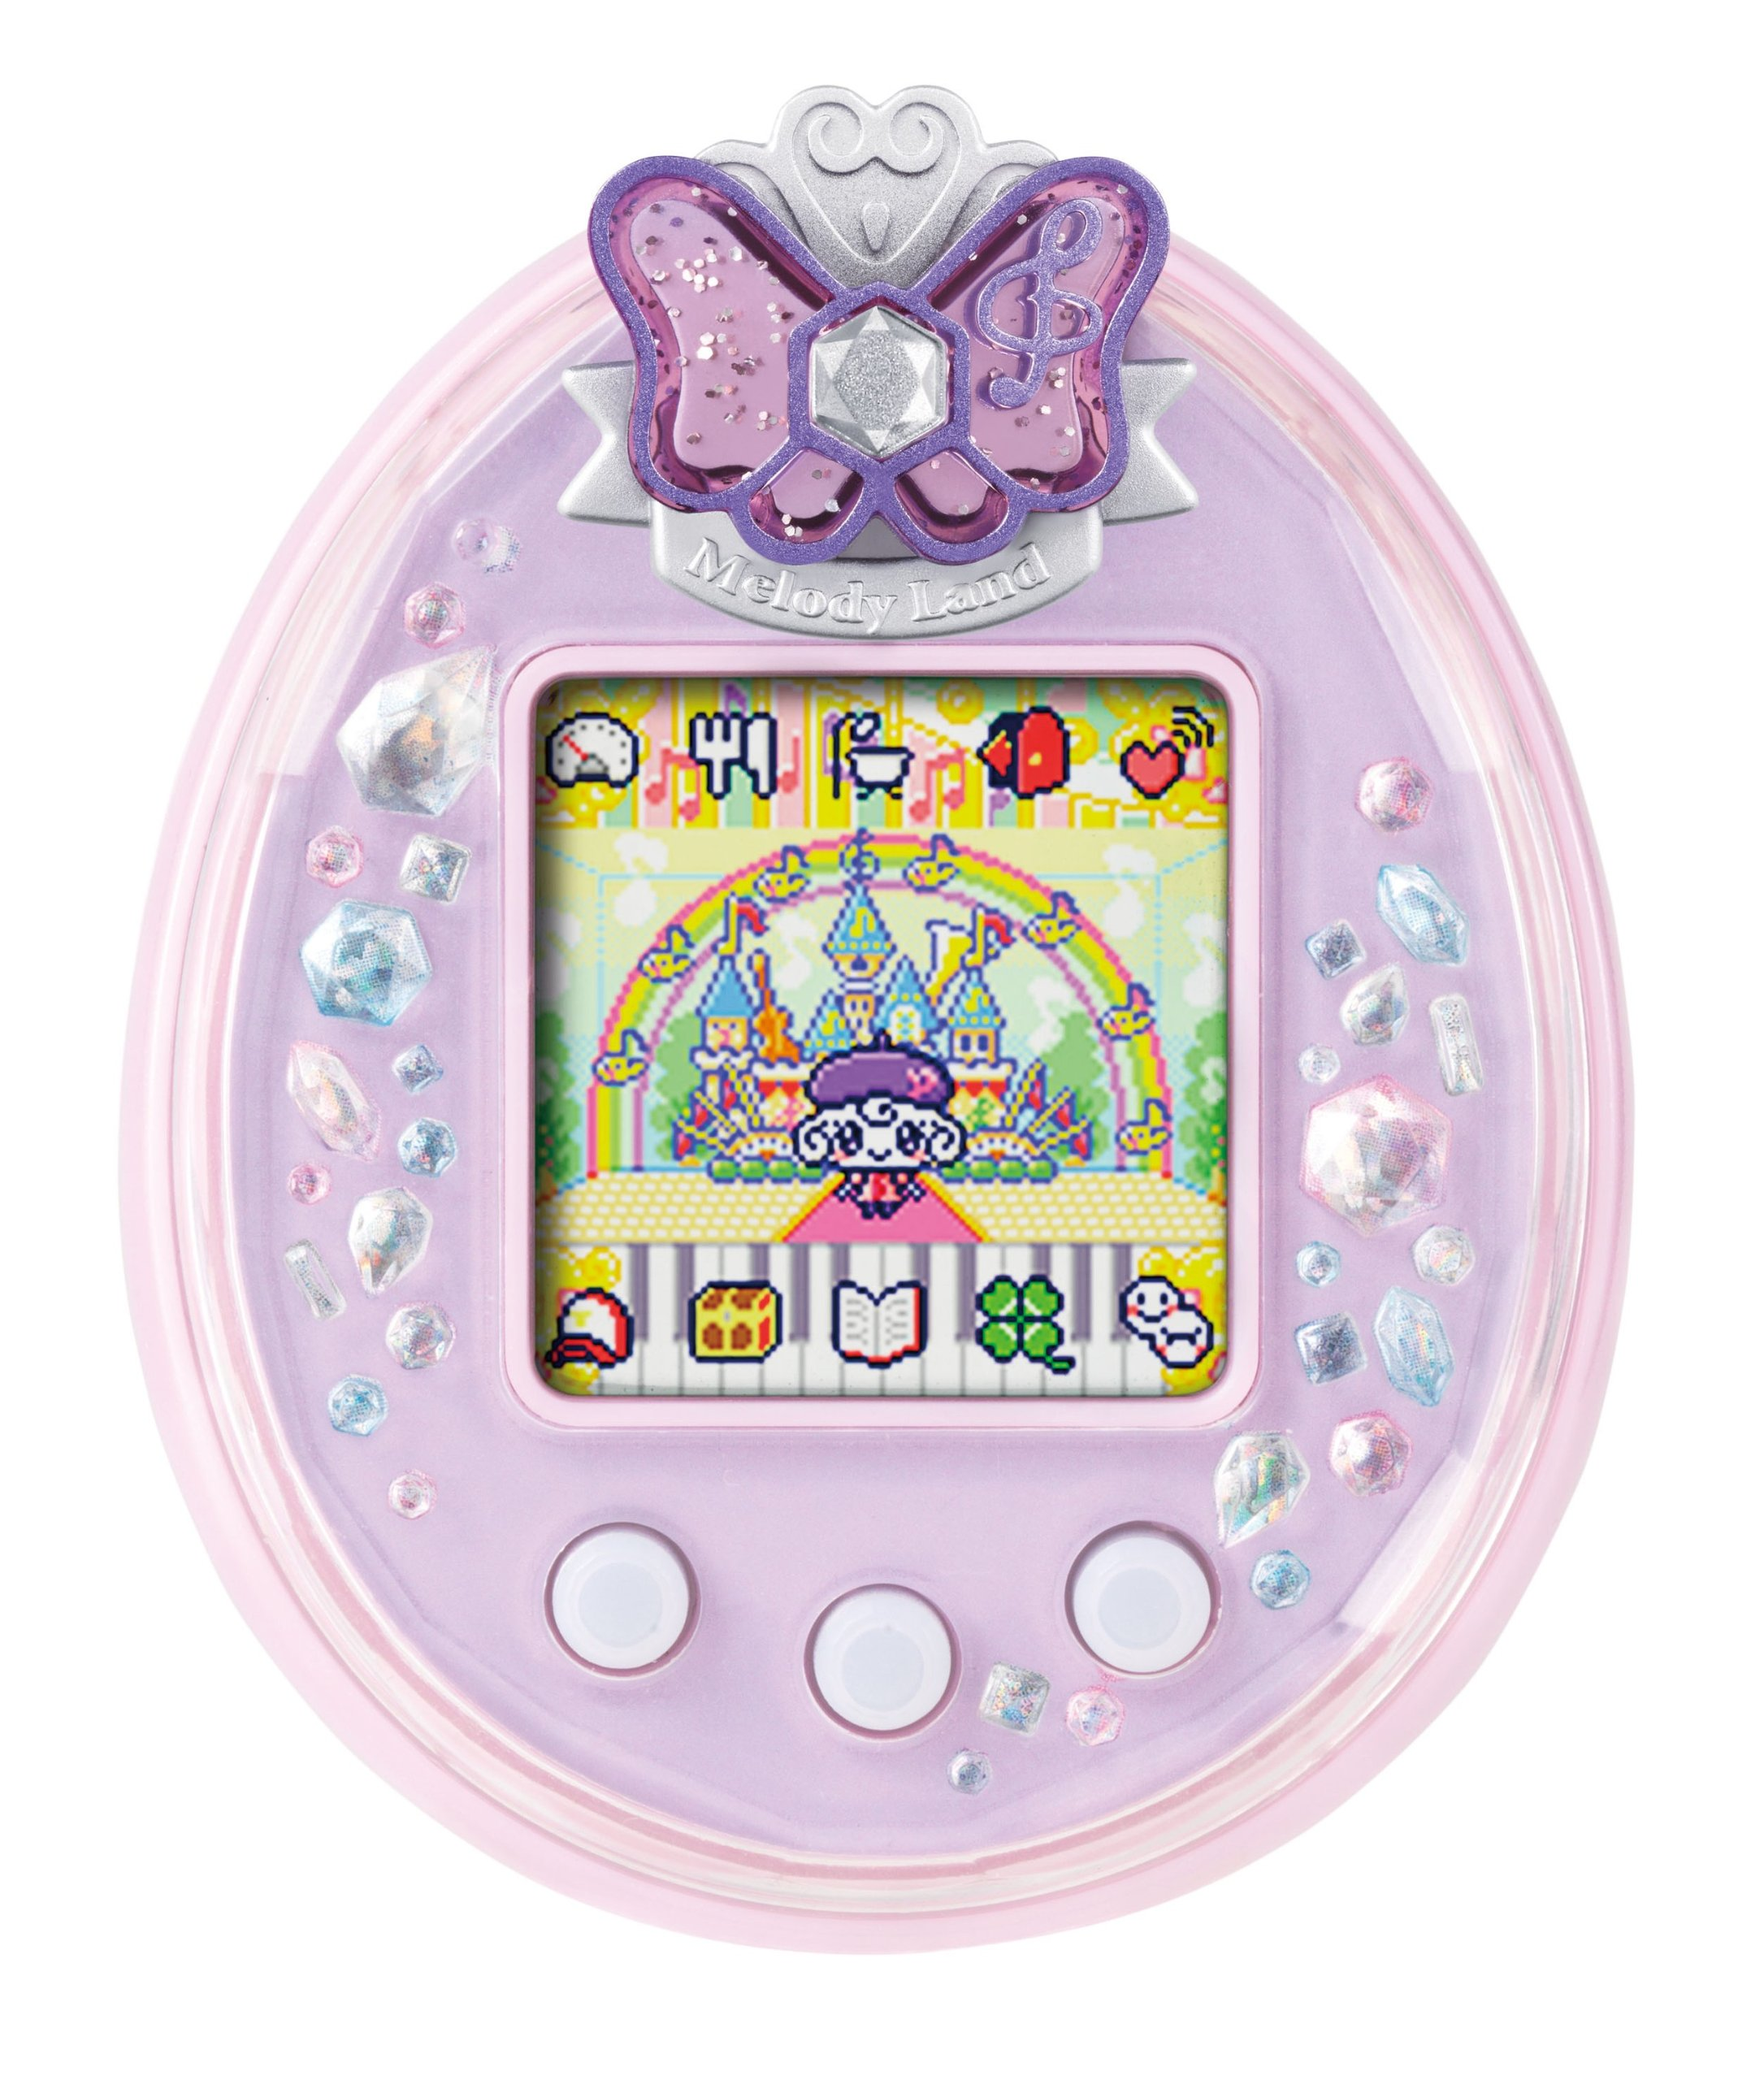 Tamagotchi P's Melody Land Set (Japan Import) by Bandai (Image #1)